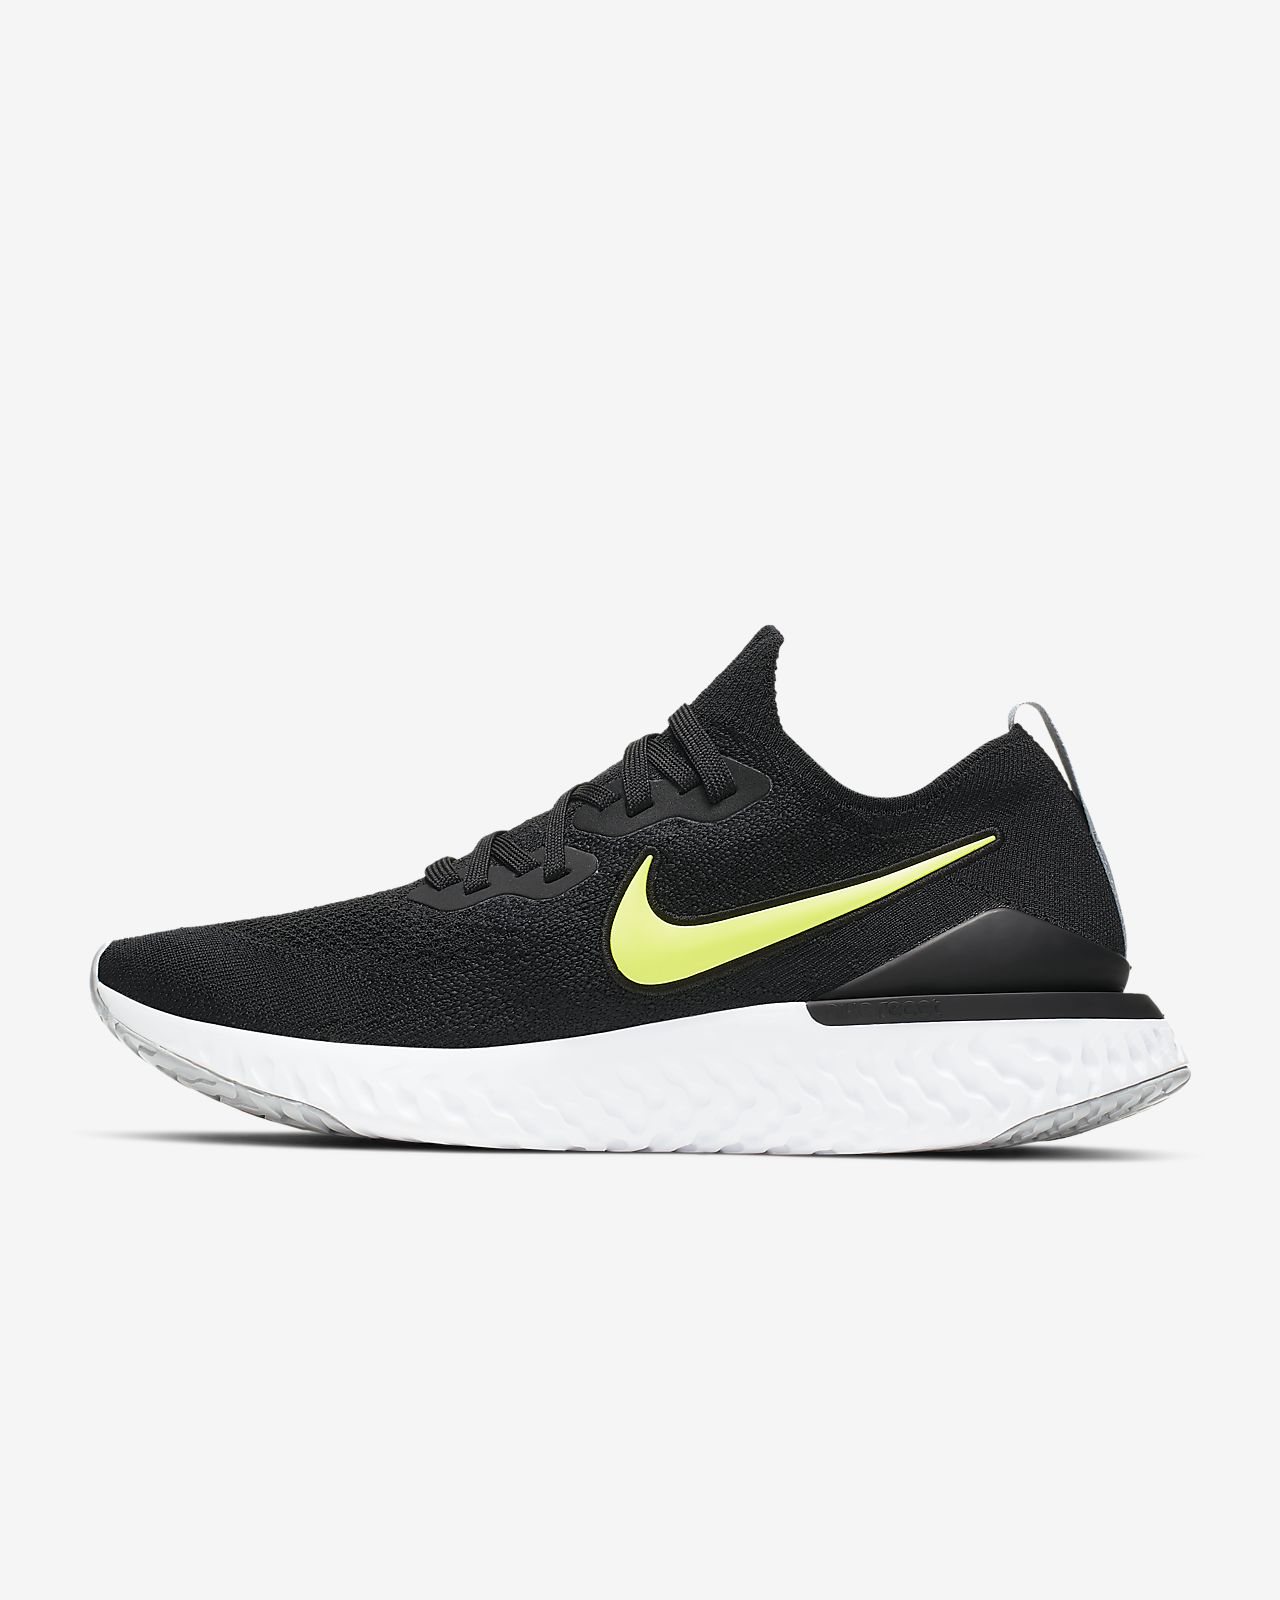 Homme Epic Running De React Flyknit Chaussure Nike 2 Opzwuxtkil Pour 9YDbHIeWE2